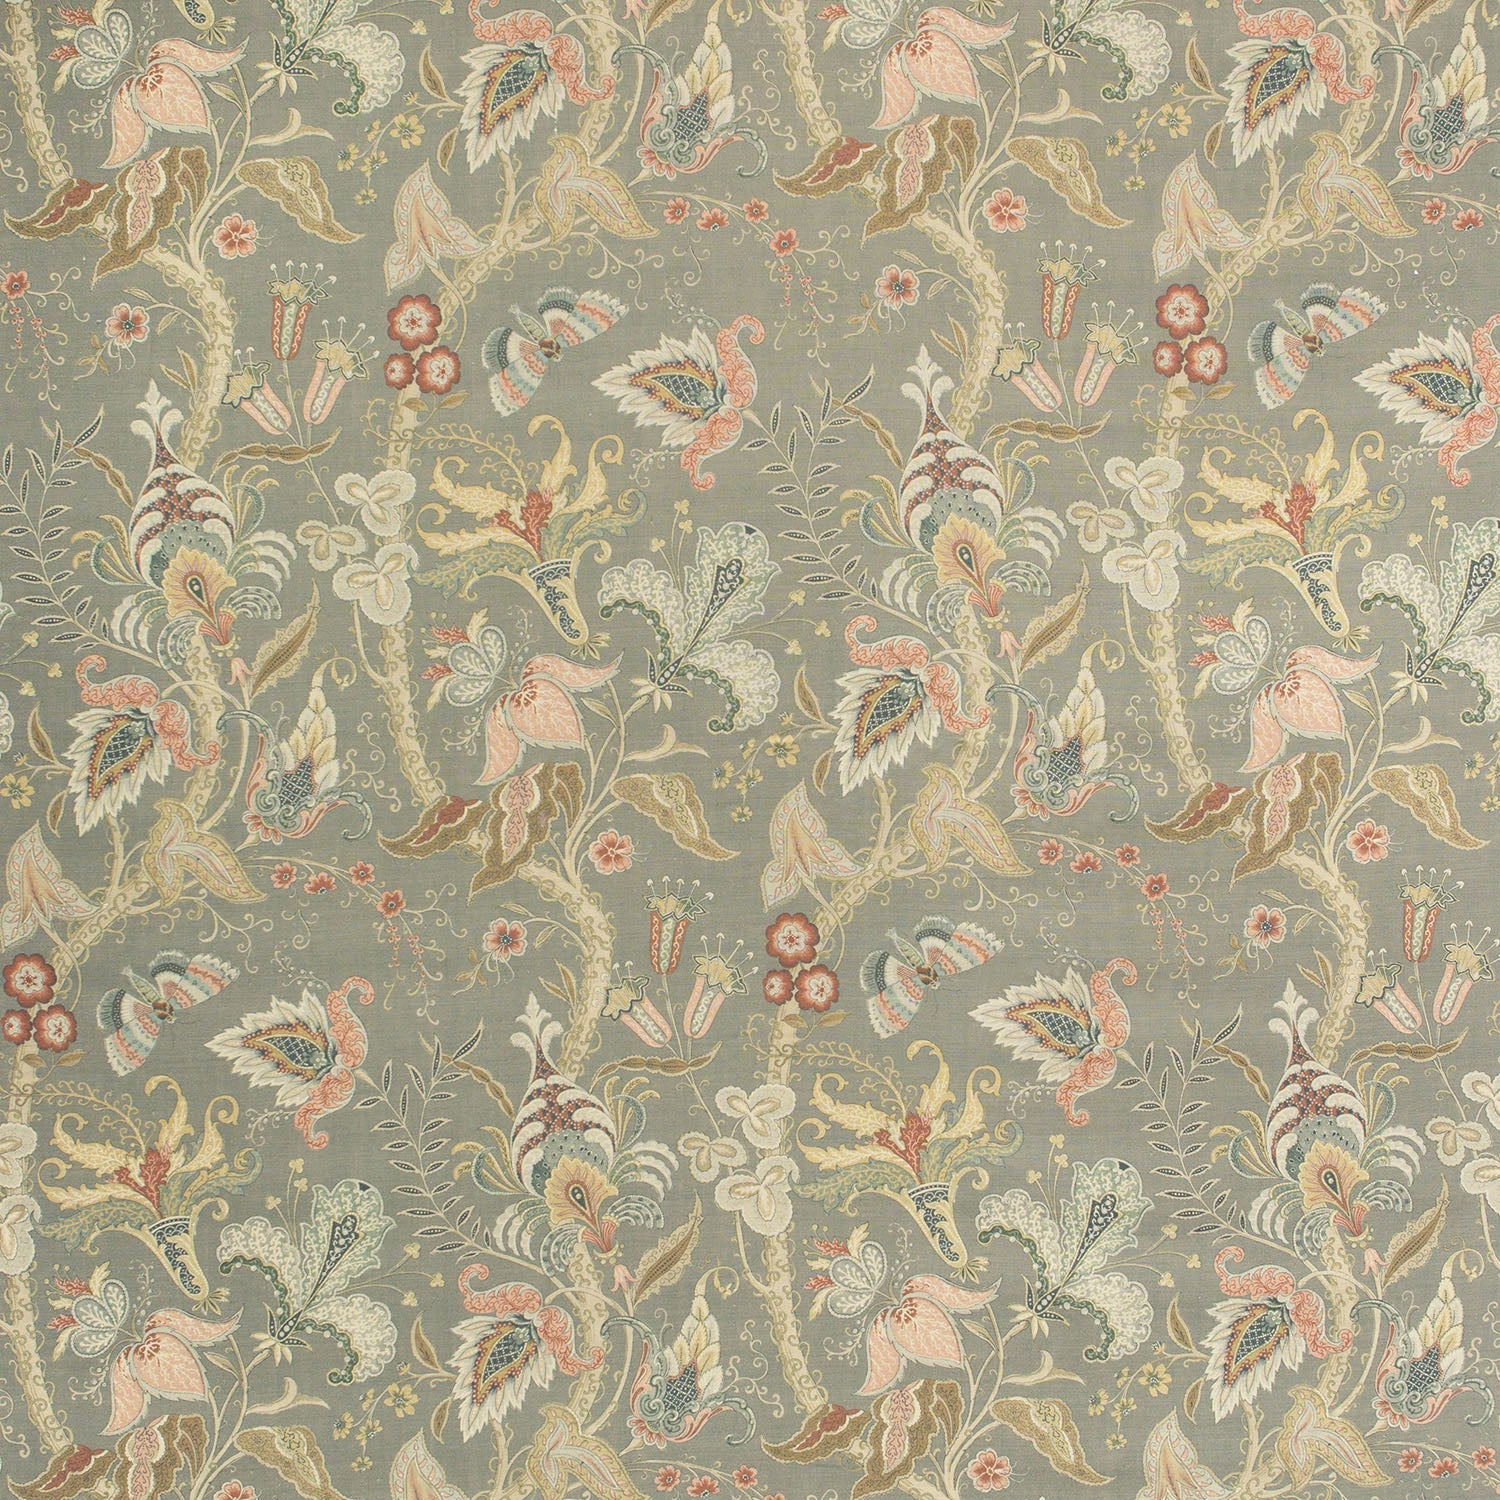 Fabric swatch of  grey fabric with stylised floral design